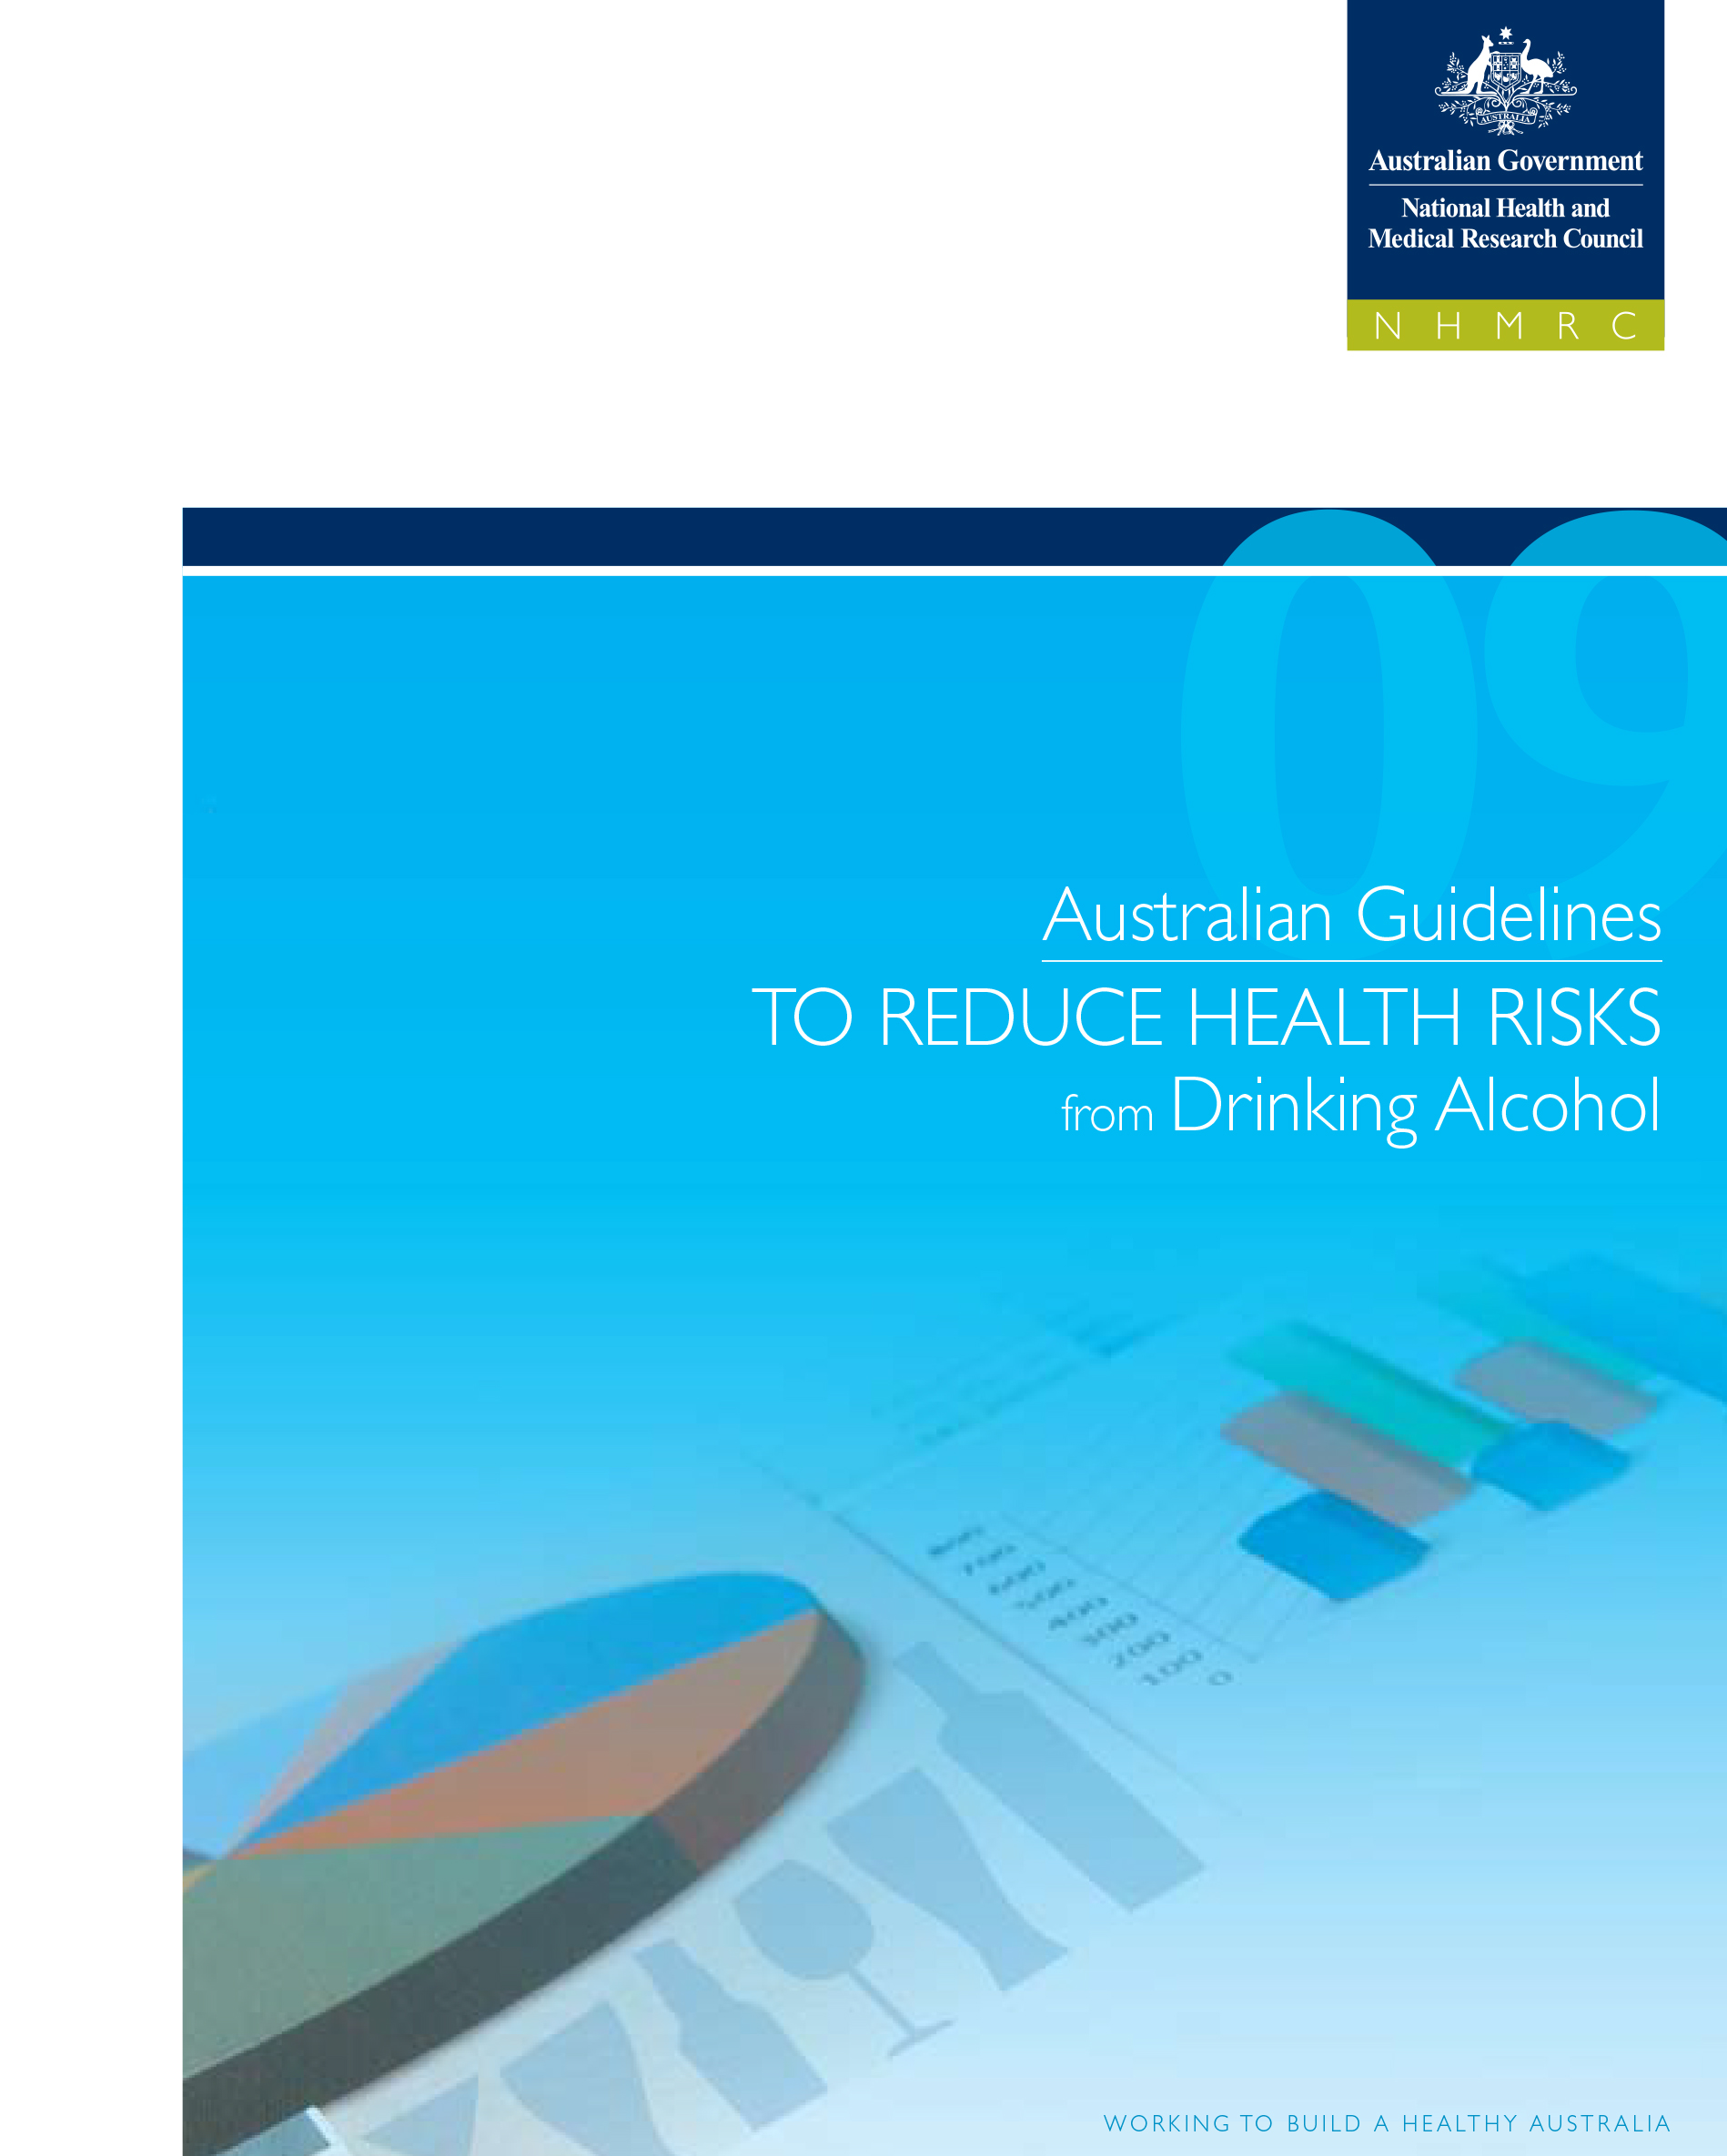 Alcohol - Australian guidelines to reduce health risks from drinking alcohol - NHMRC (2009)